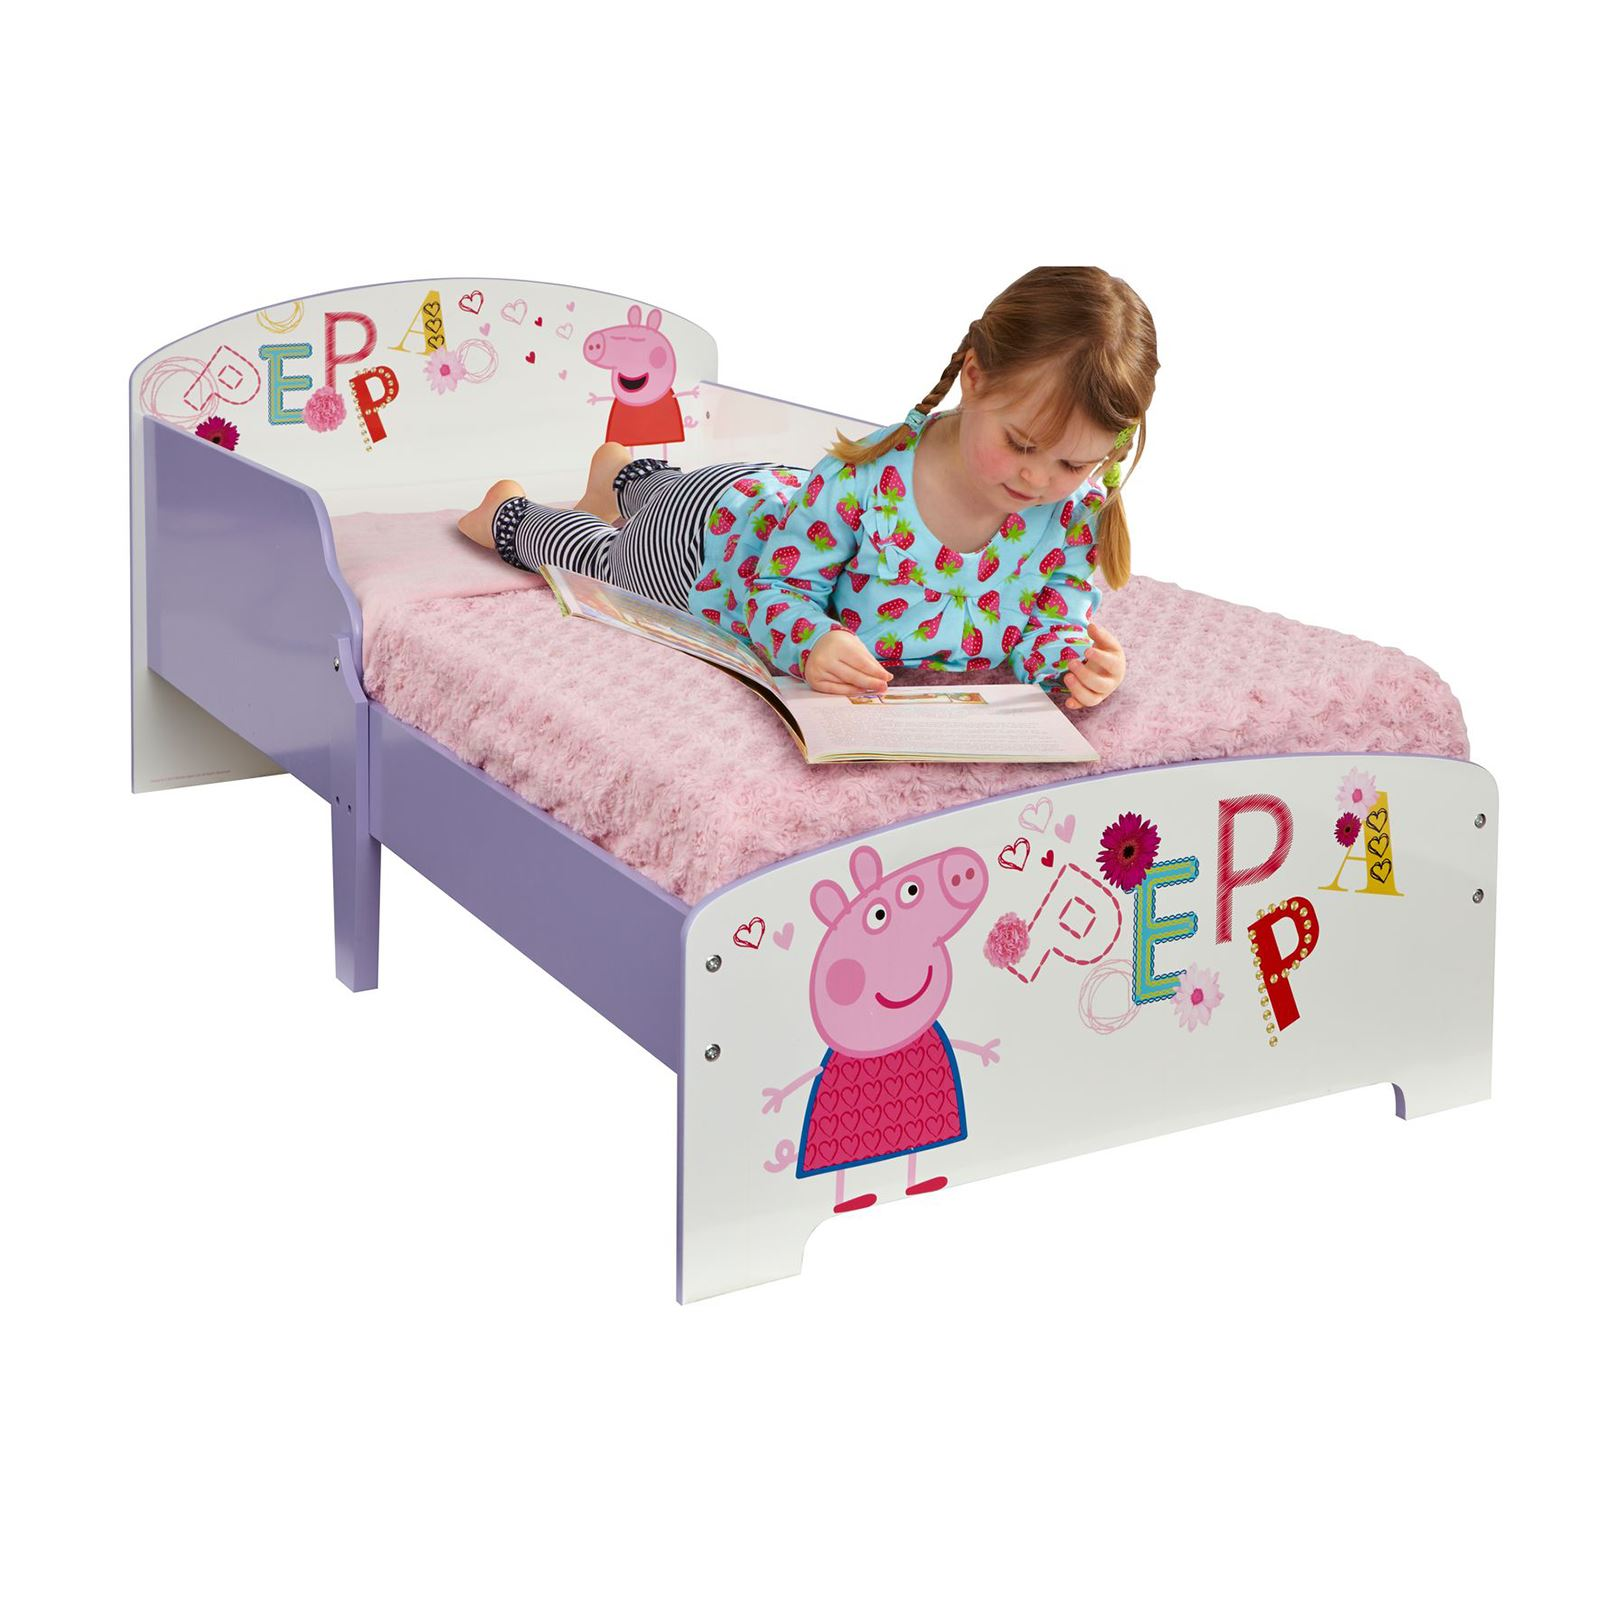 charakter kleinkind betten ohne aufbewahrungs disney cars peppa thomas mehr ebay. Black Bedroom Furniture Sets. Home Design Ideas